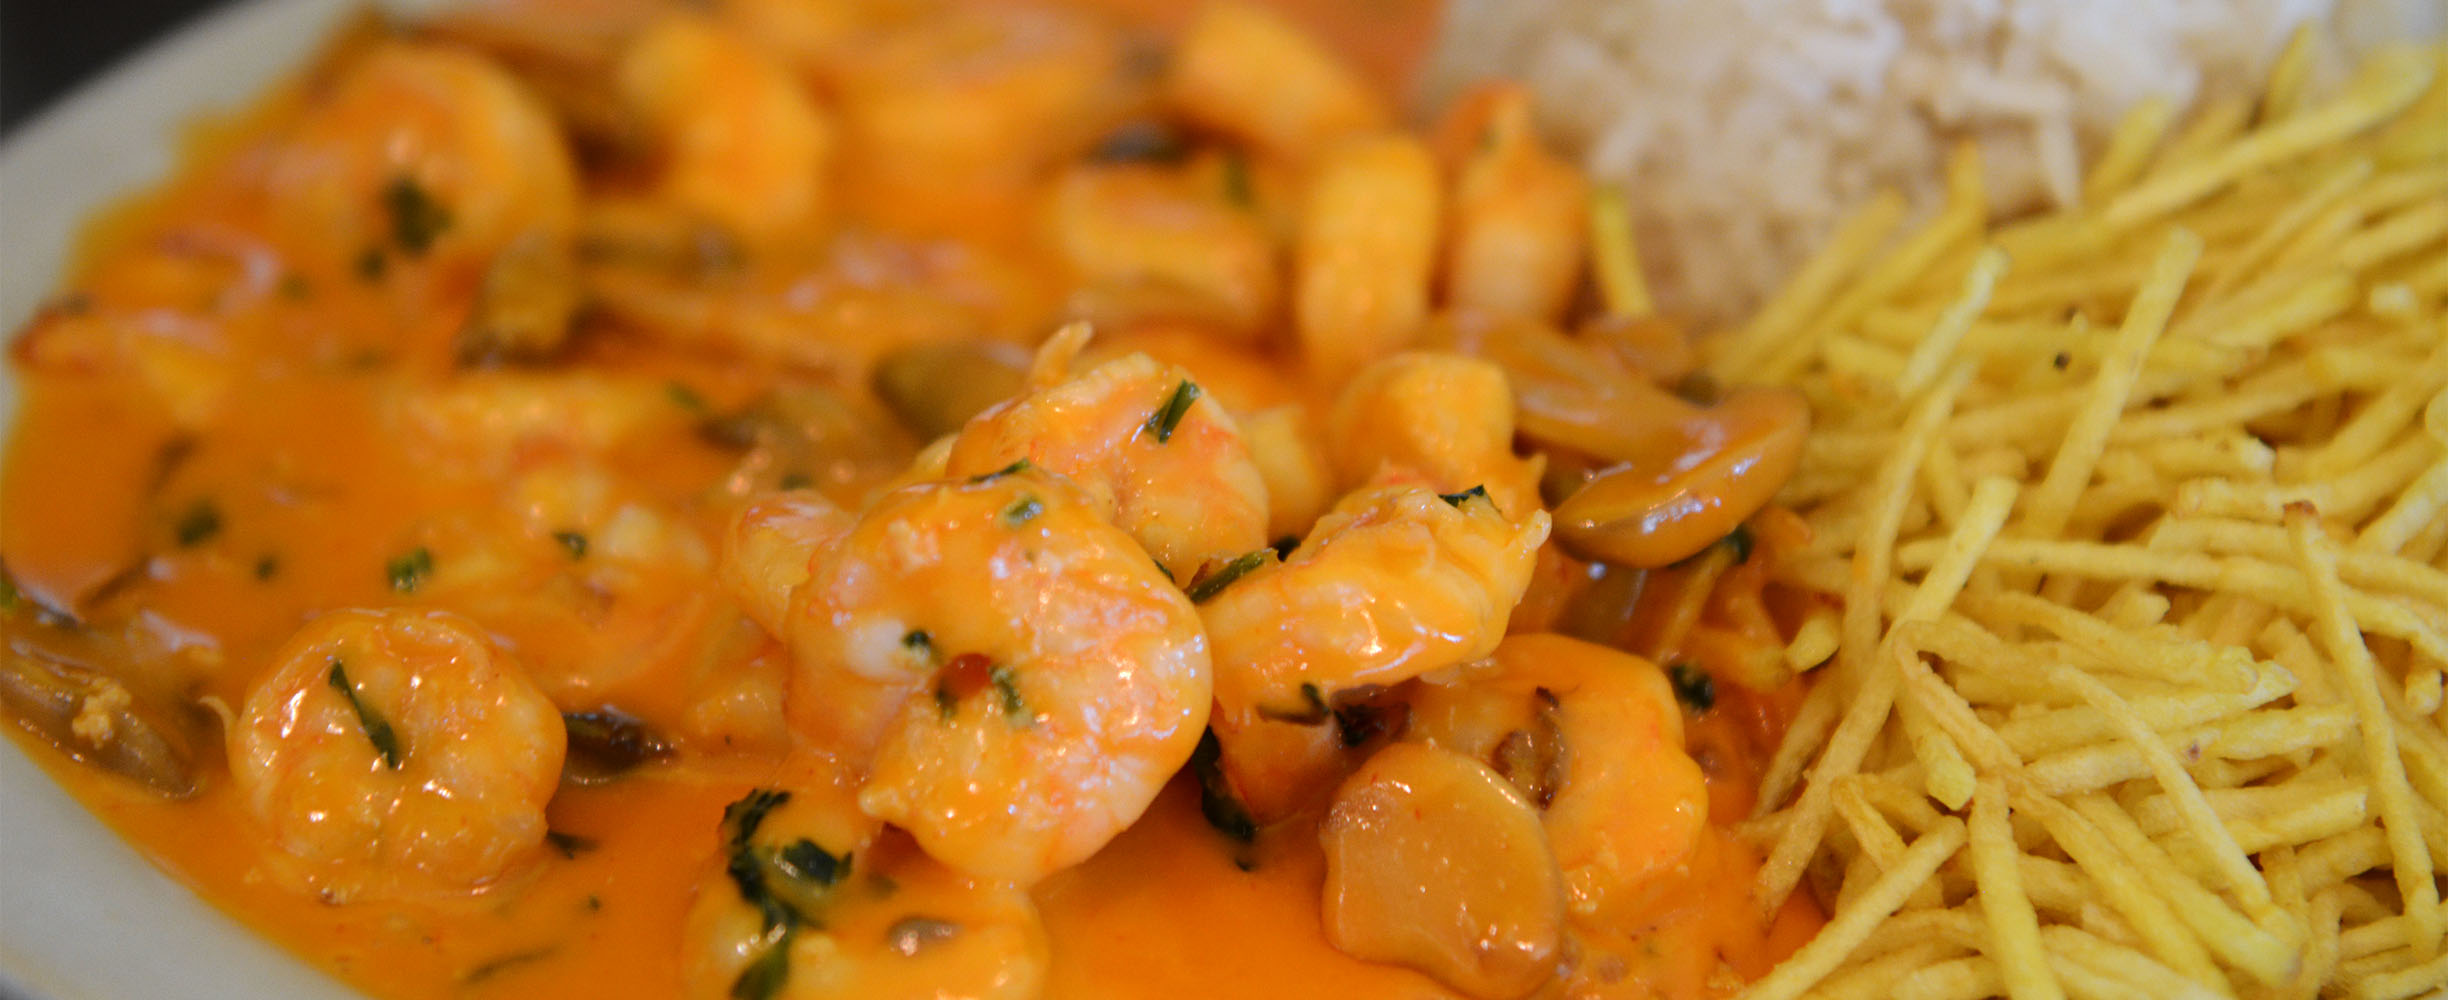 Delicious shrimps for Breakfast or Brunch!